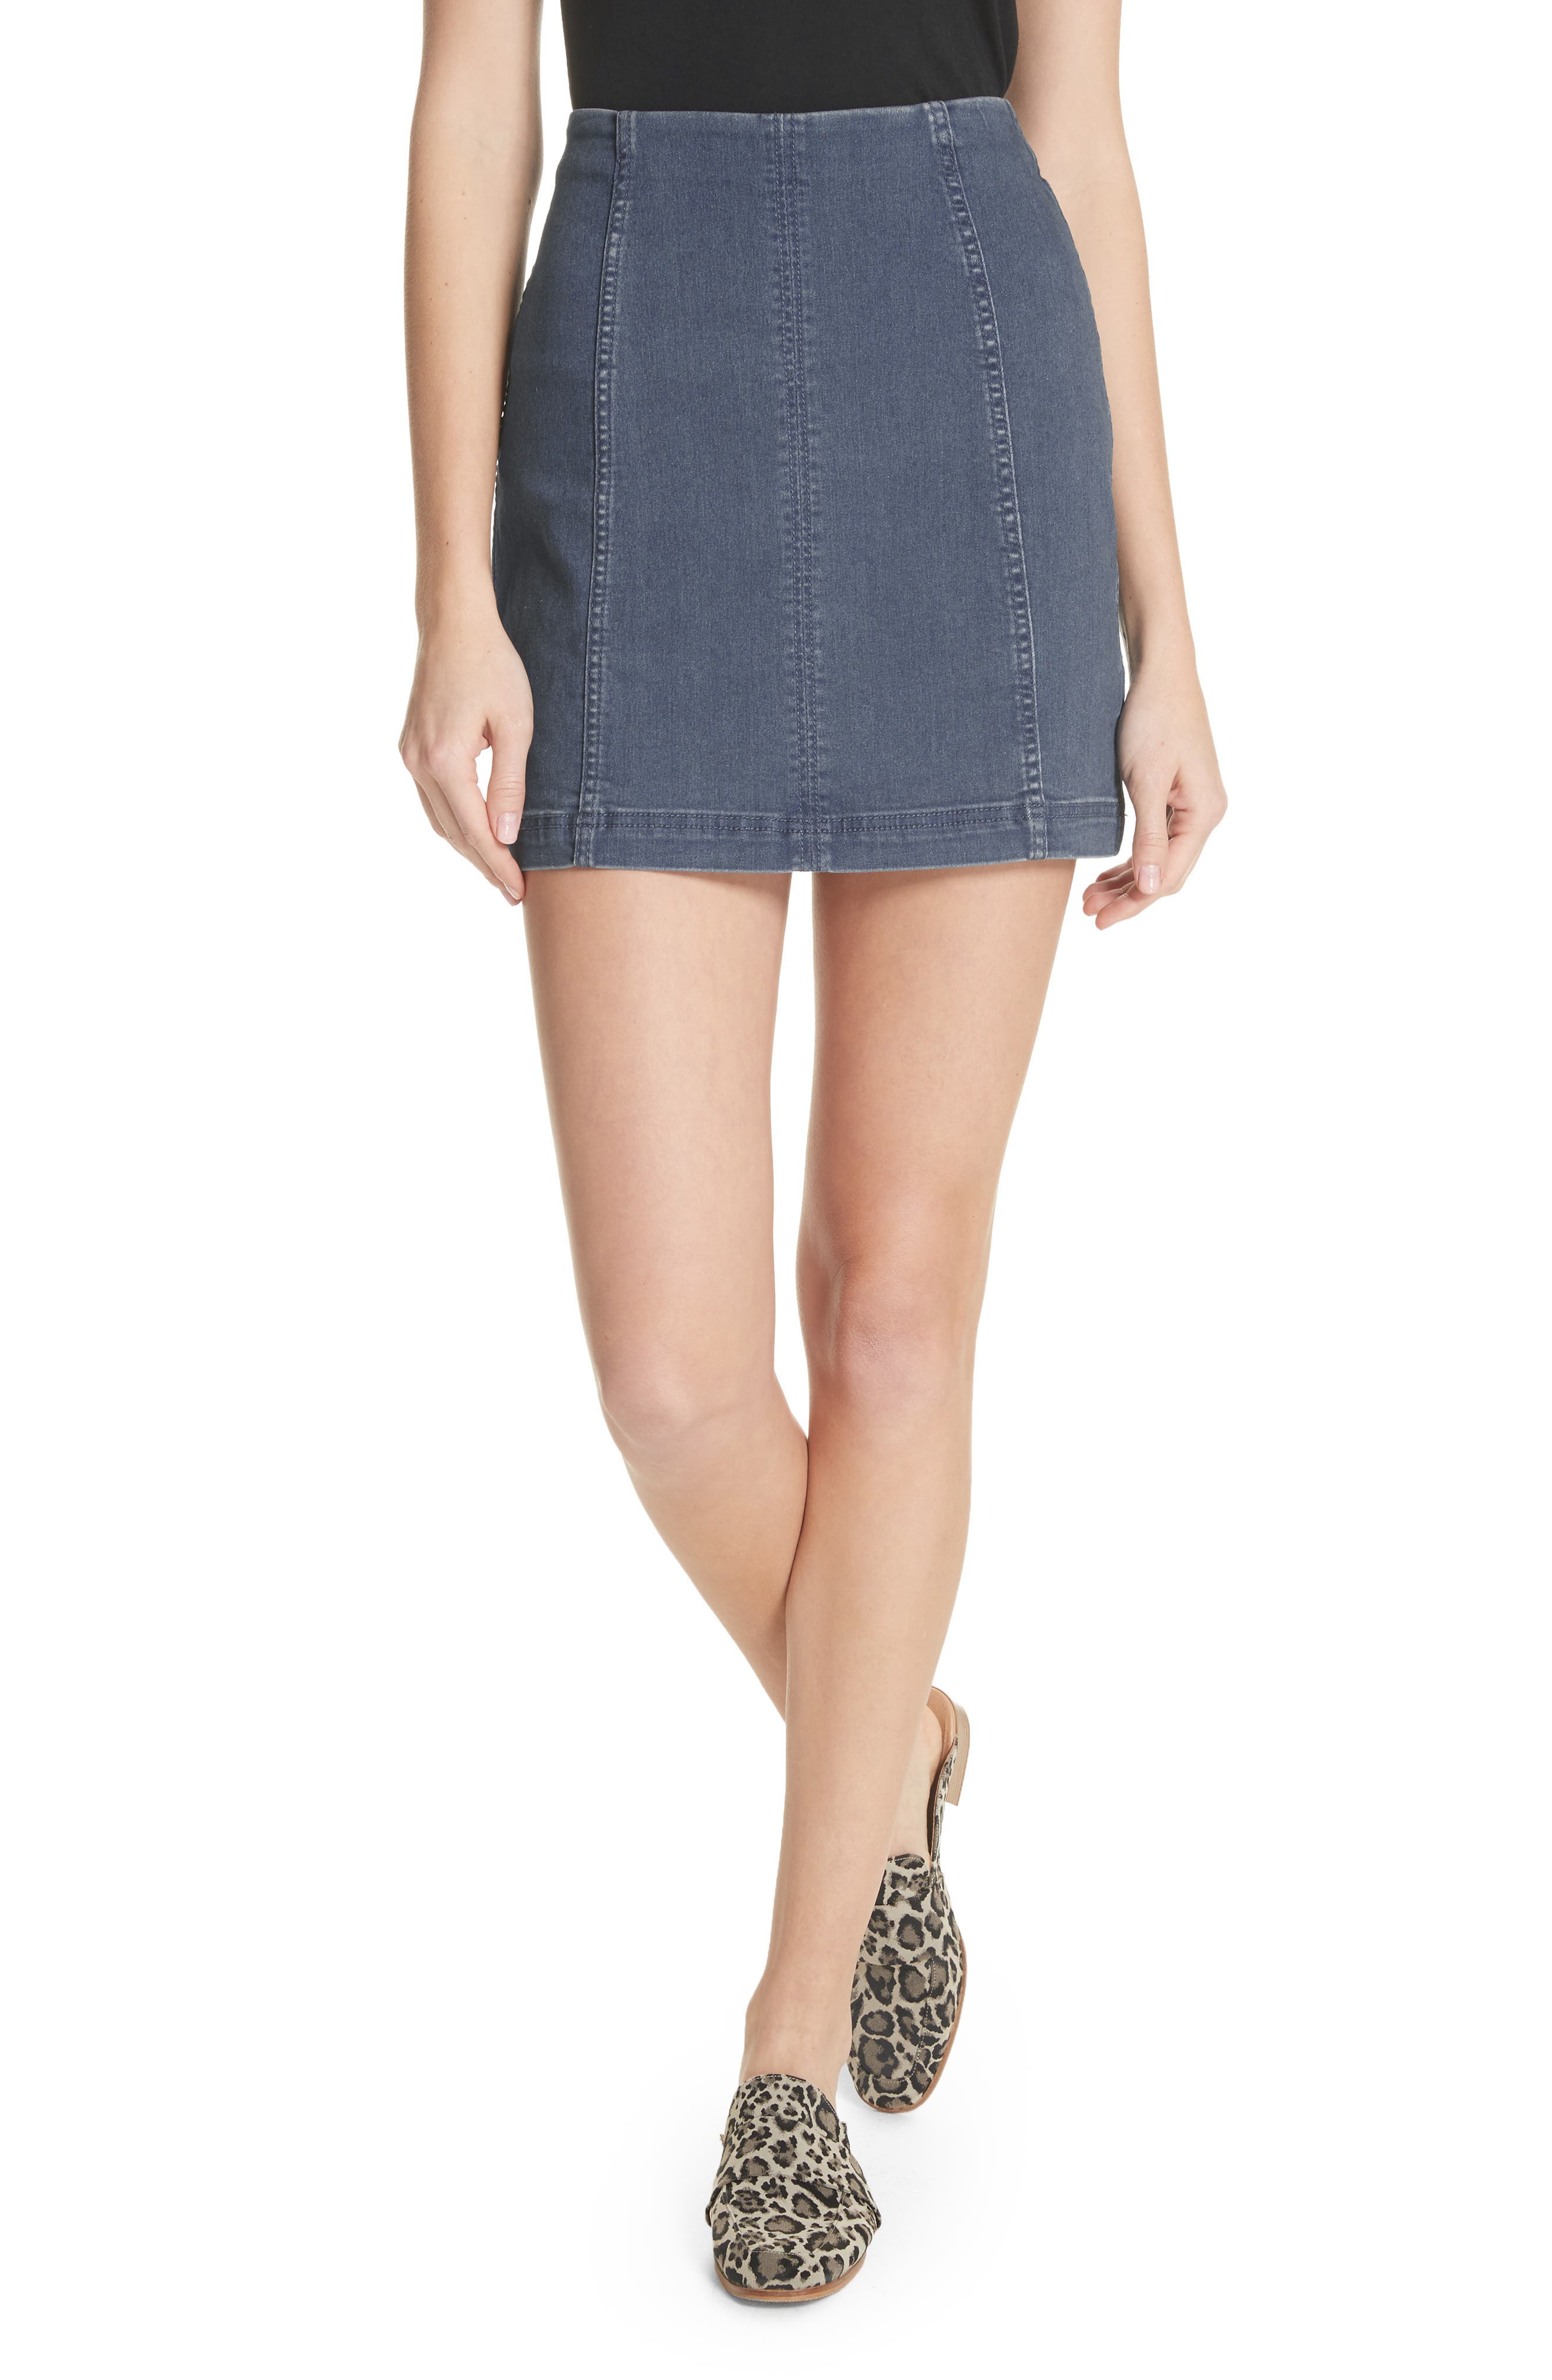 FREE PEOPLE, We the Free by Free People Modern Denim Miniskirt, Main thumbnail 1, color, 400